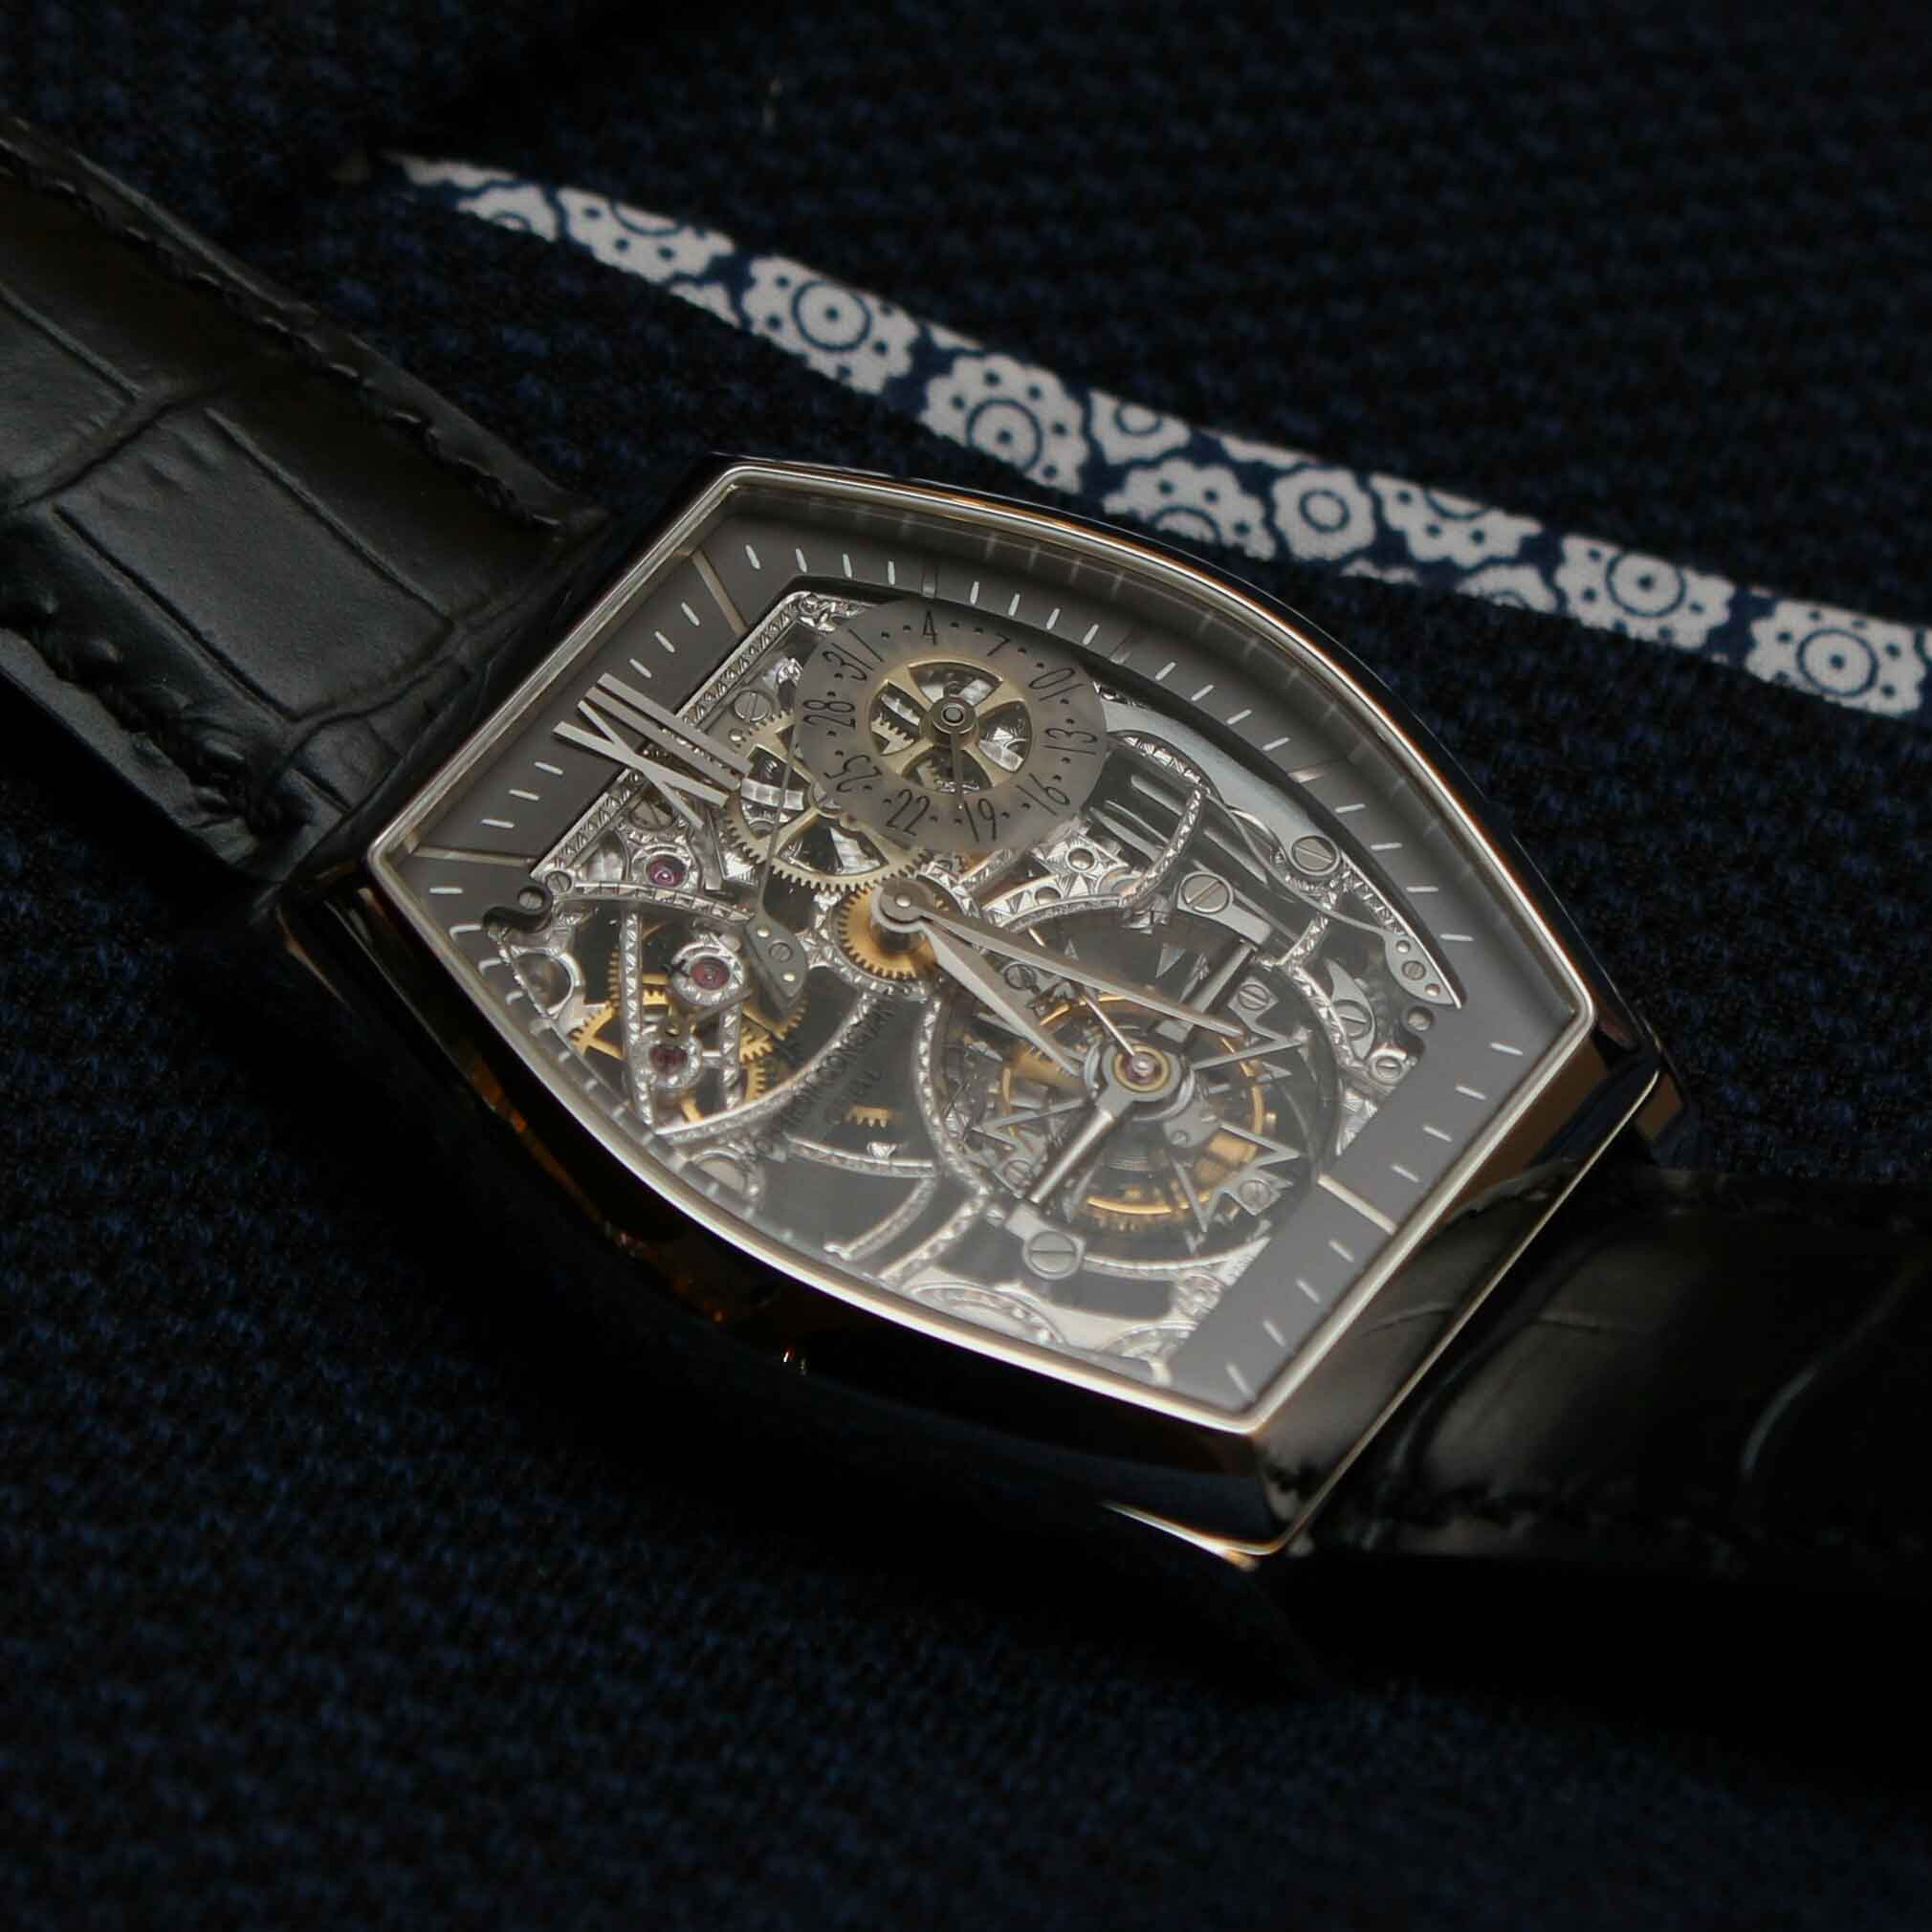 Vacheron Constantin Malte Tourbillon Openworked. Swisswatches©